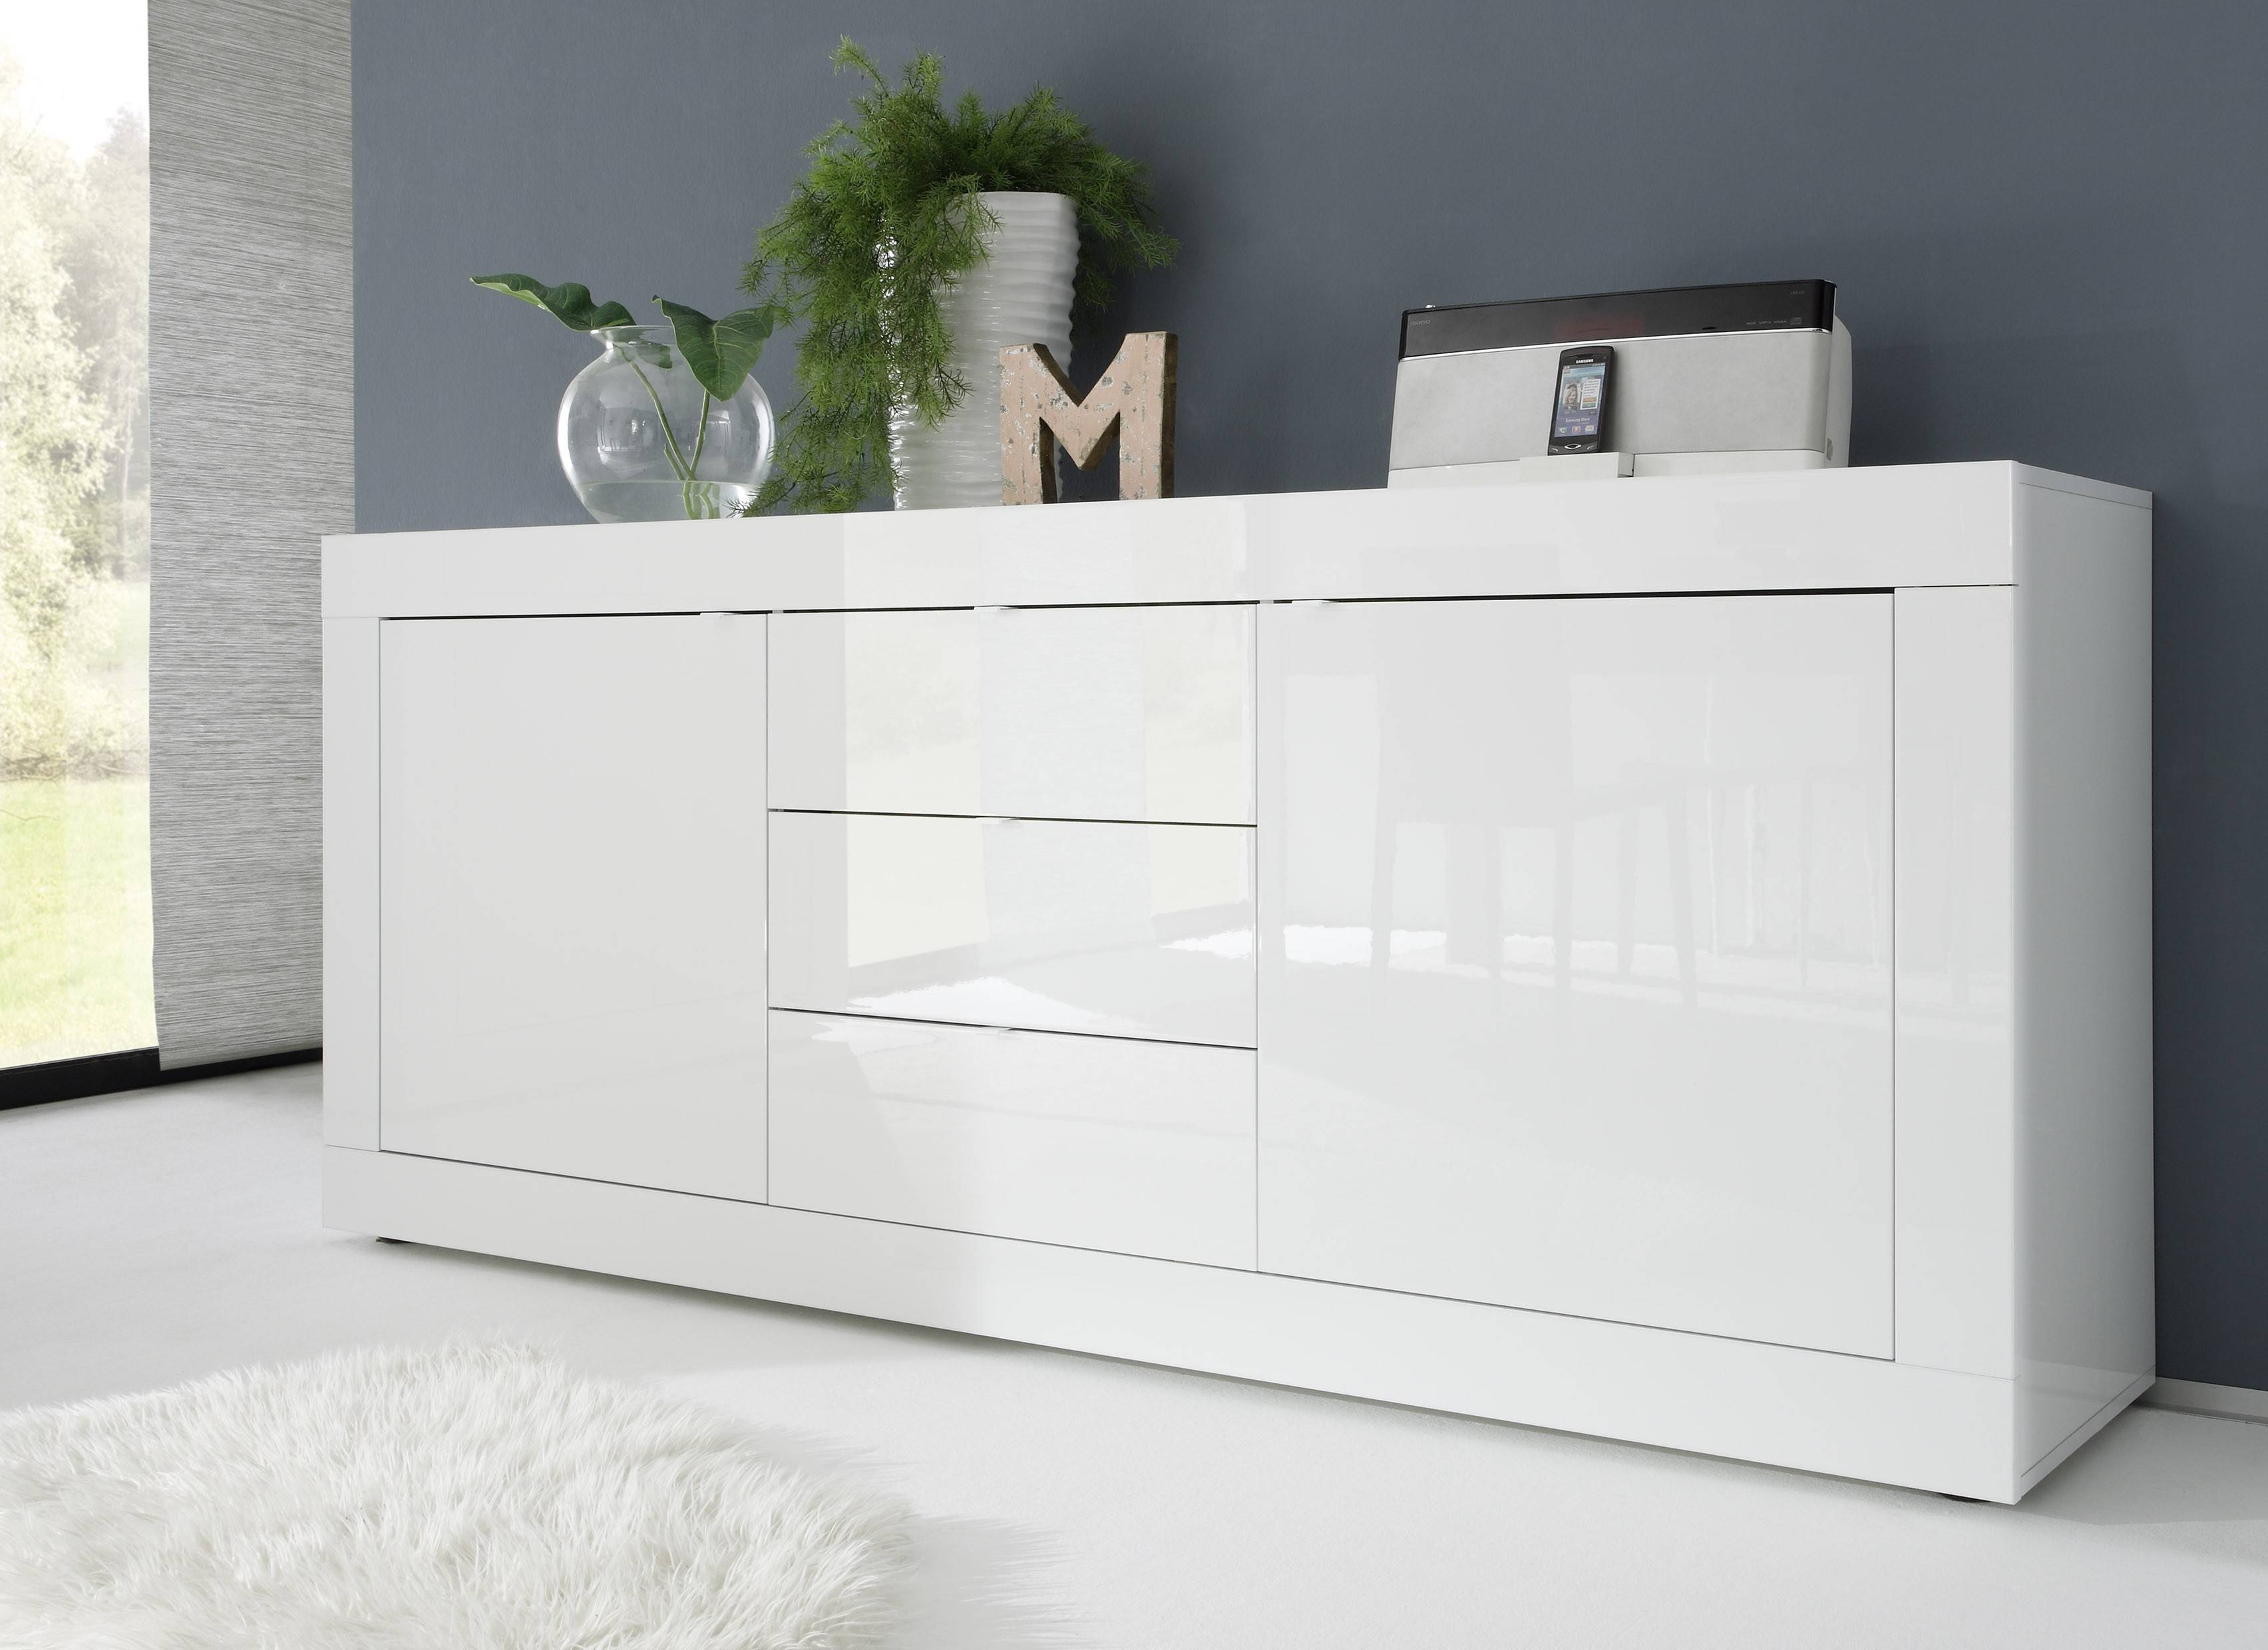 Basic Contemporary White Glossy Lacquer Dining Buffet Lincoln For Modern White Sideboards (View 3 of 15)